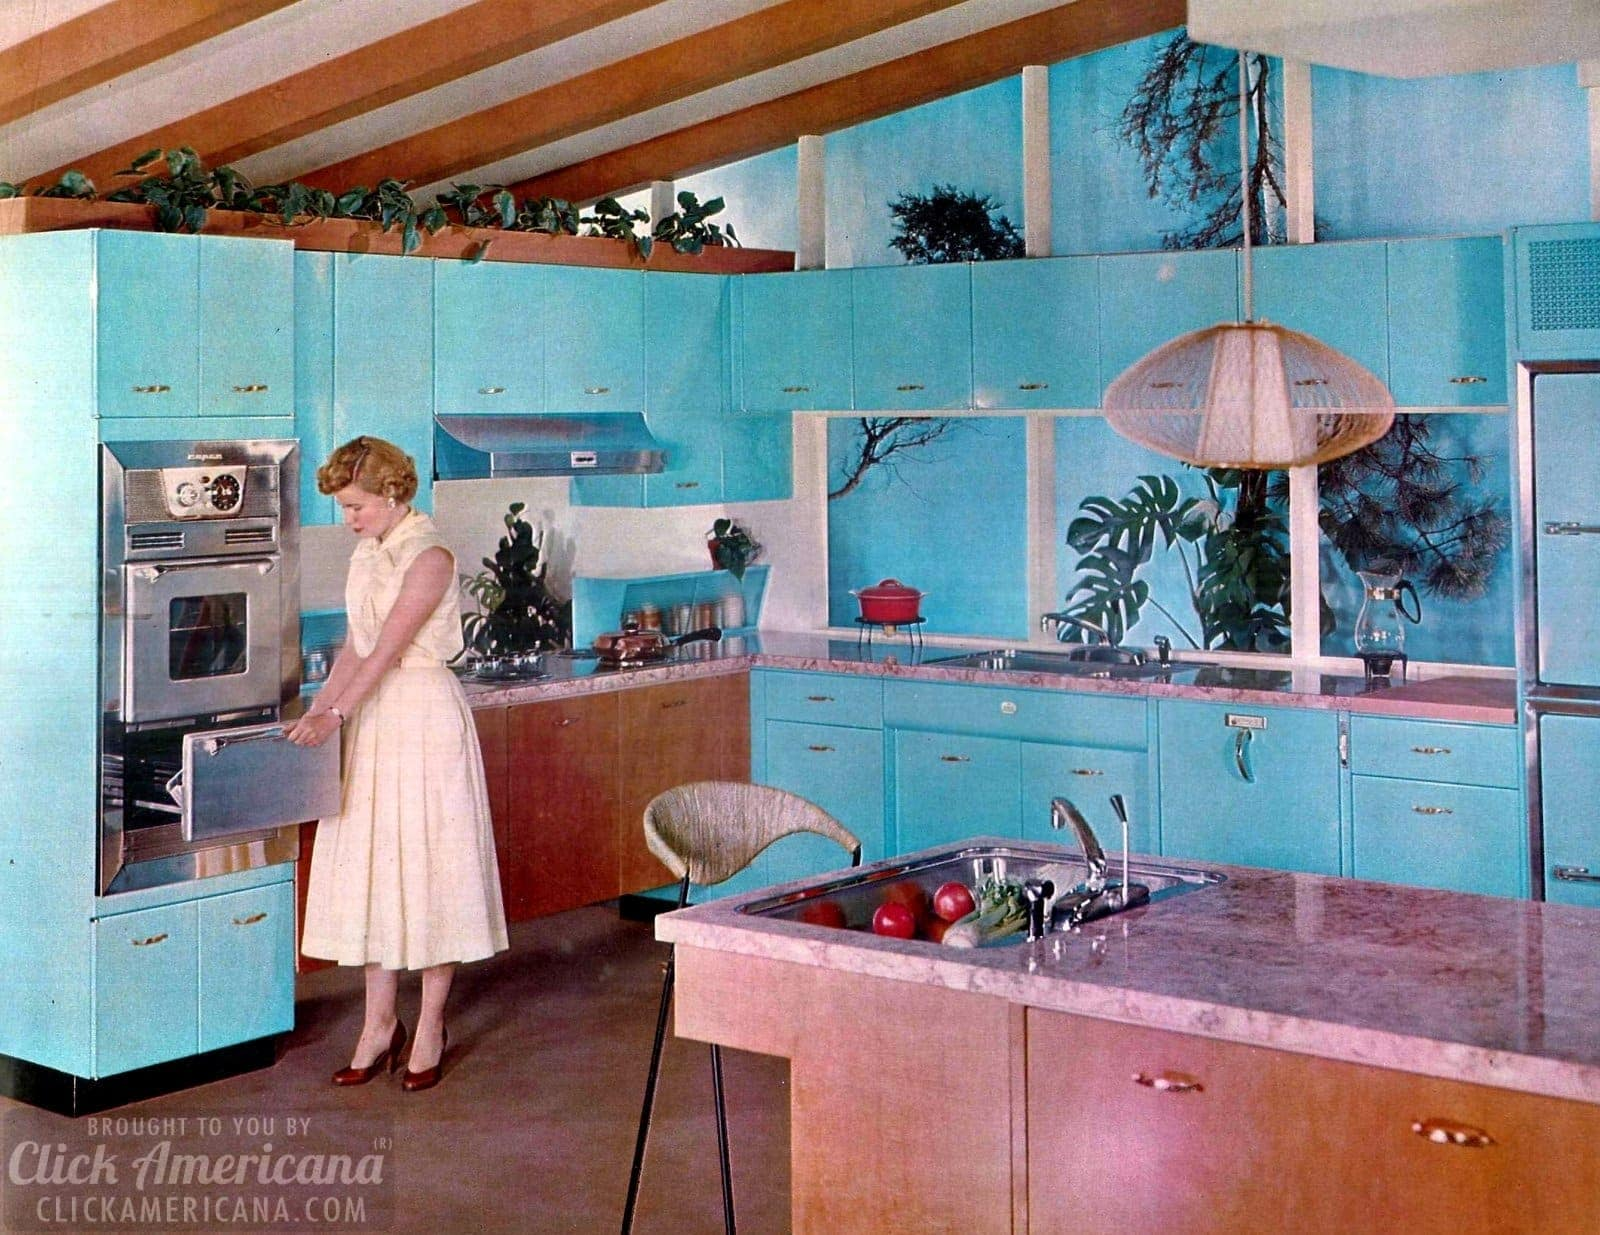 Geneva Modern Kitchens in blue from 1958